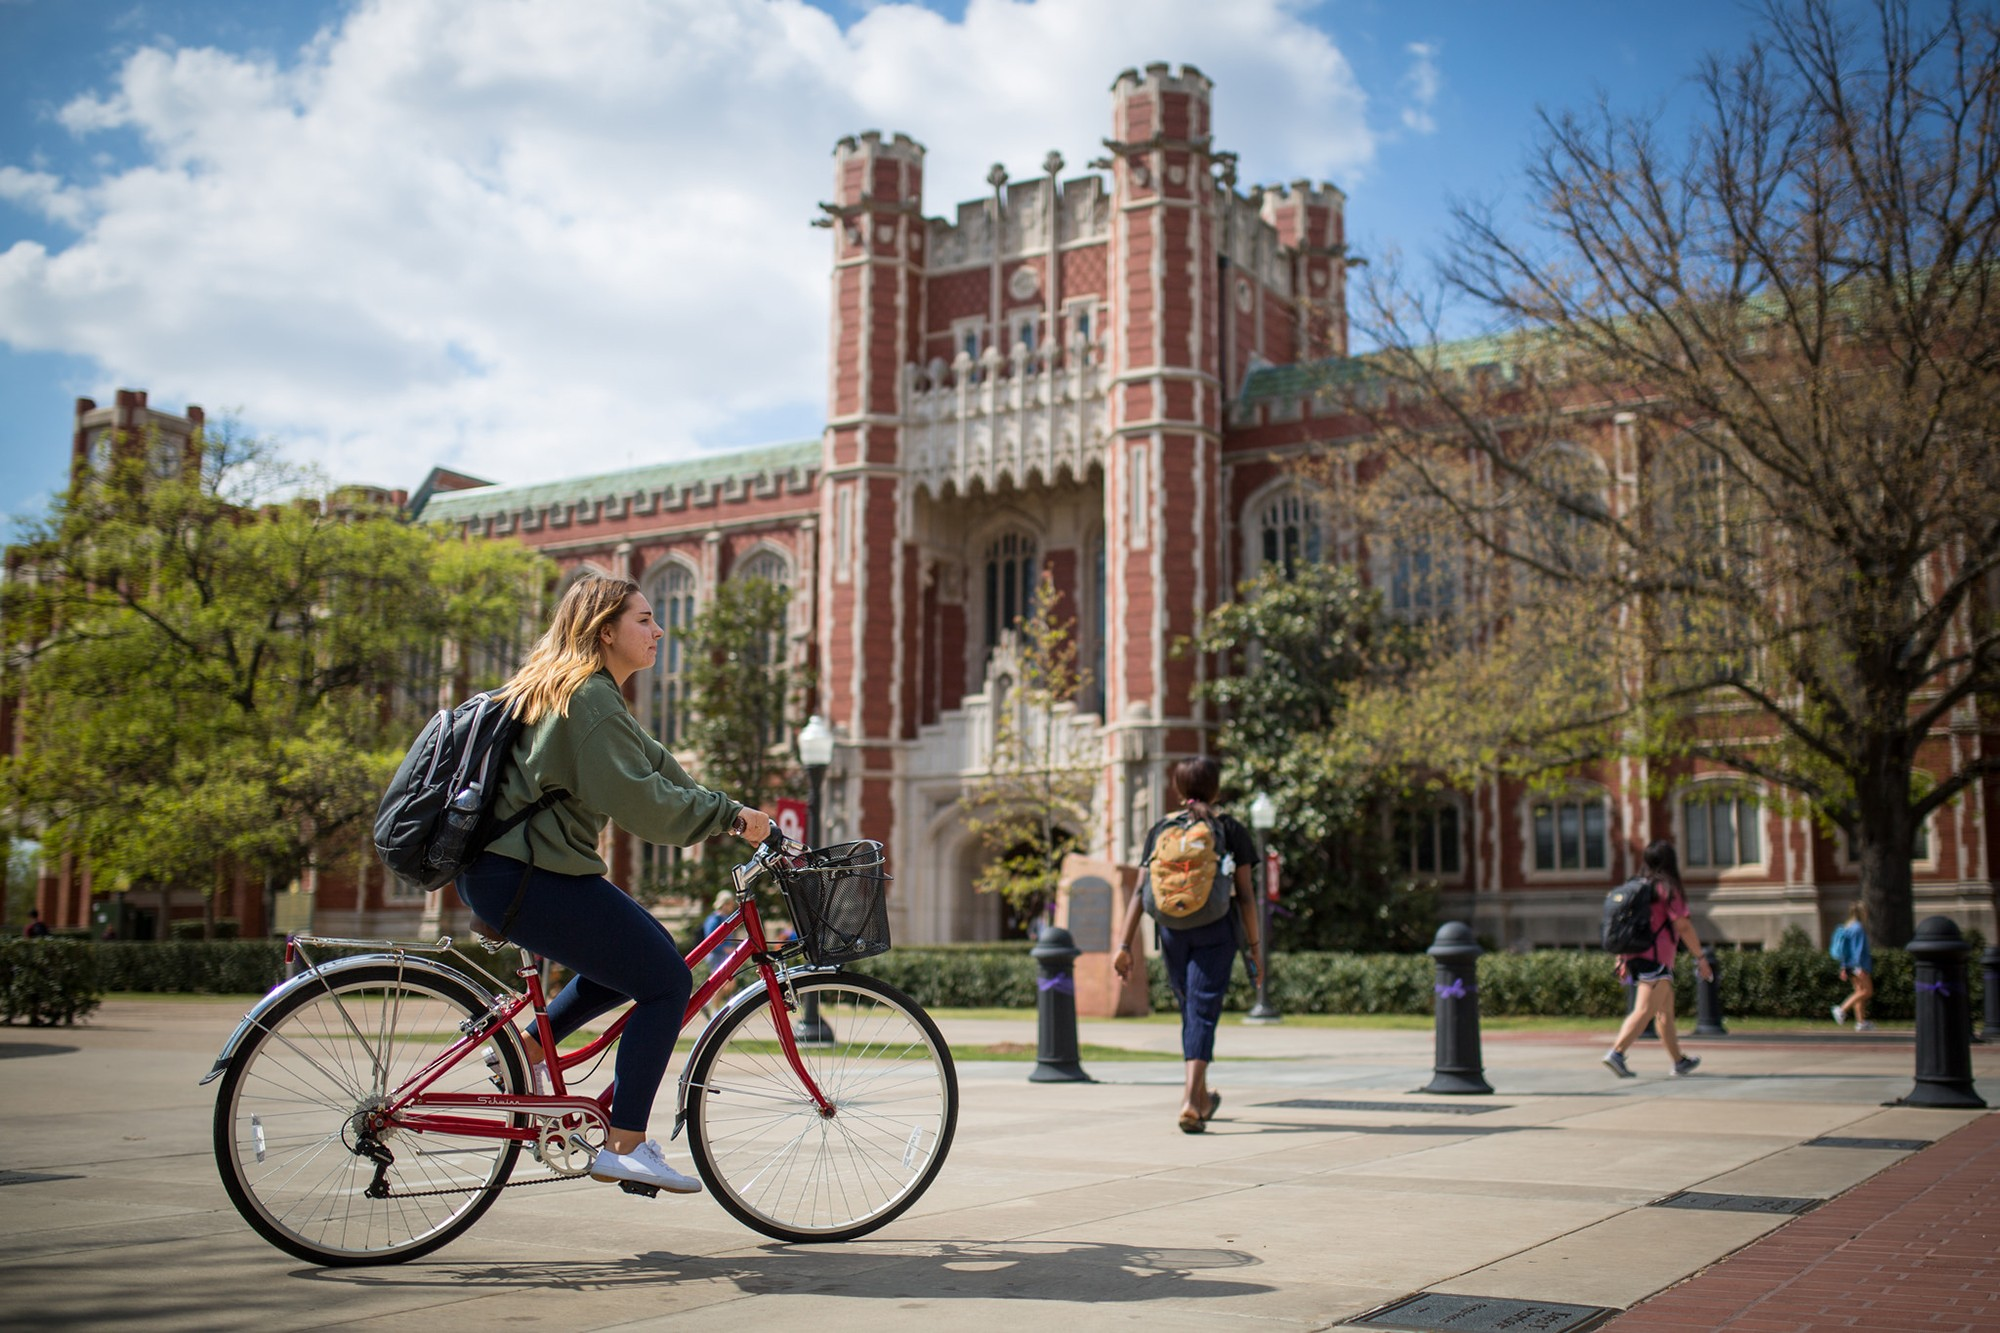 University of Oklahoma building in background with people walking outside, girl on bicycle in foreground